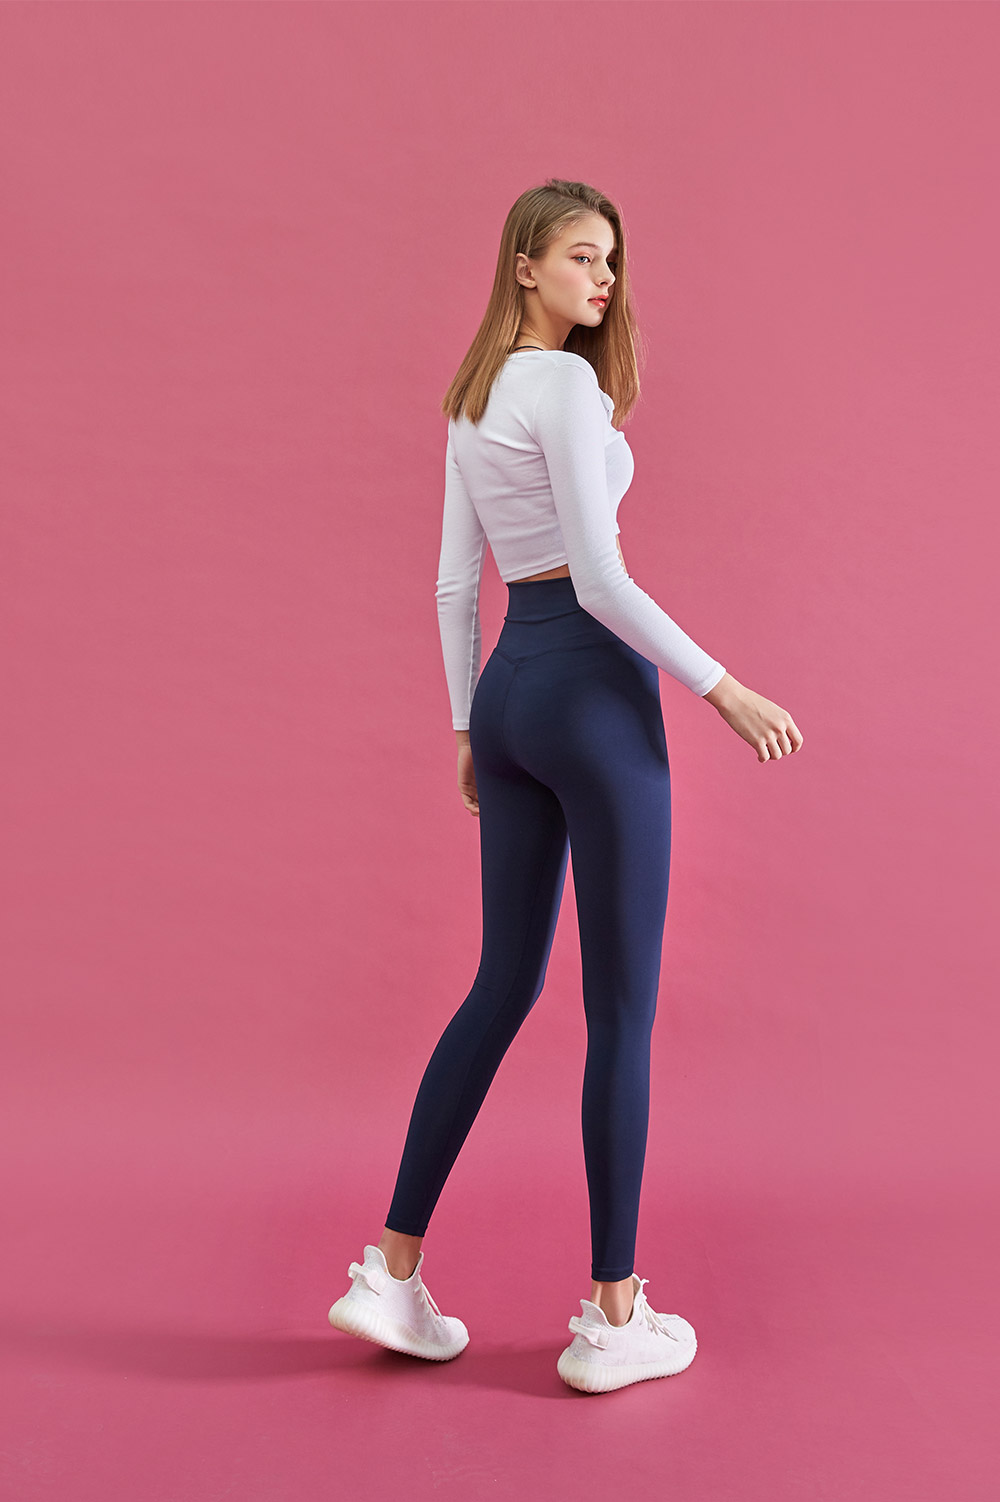 //cdn.nhanh.vn/cdn/store/29770/psCT/20190108/11027736/_5Kg_Perfect_Line_Leggings_Plus_(2019_22_43).jpg